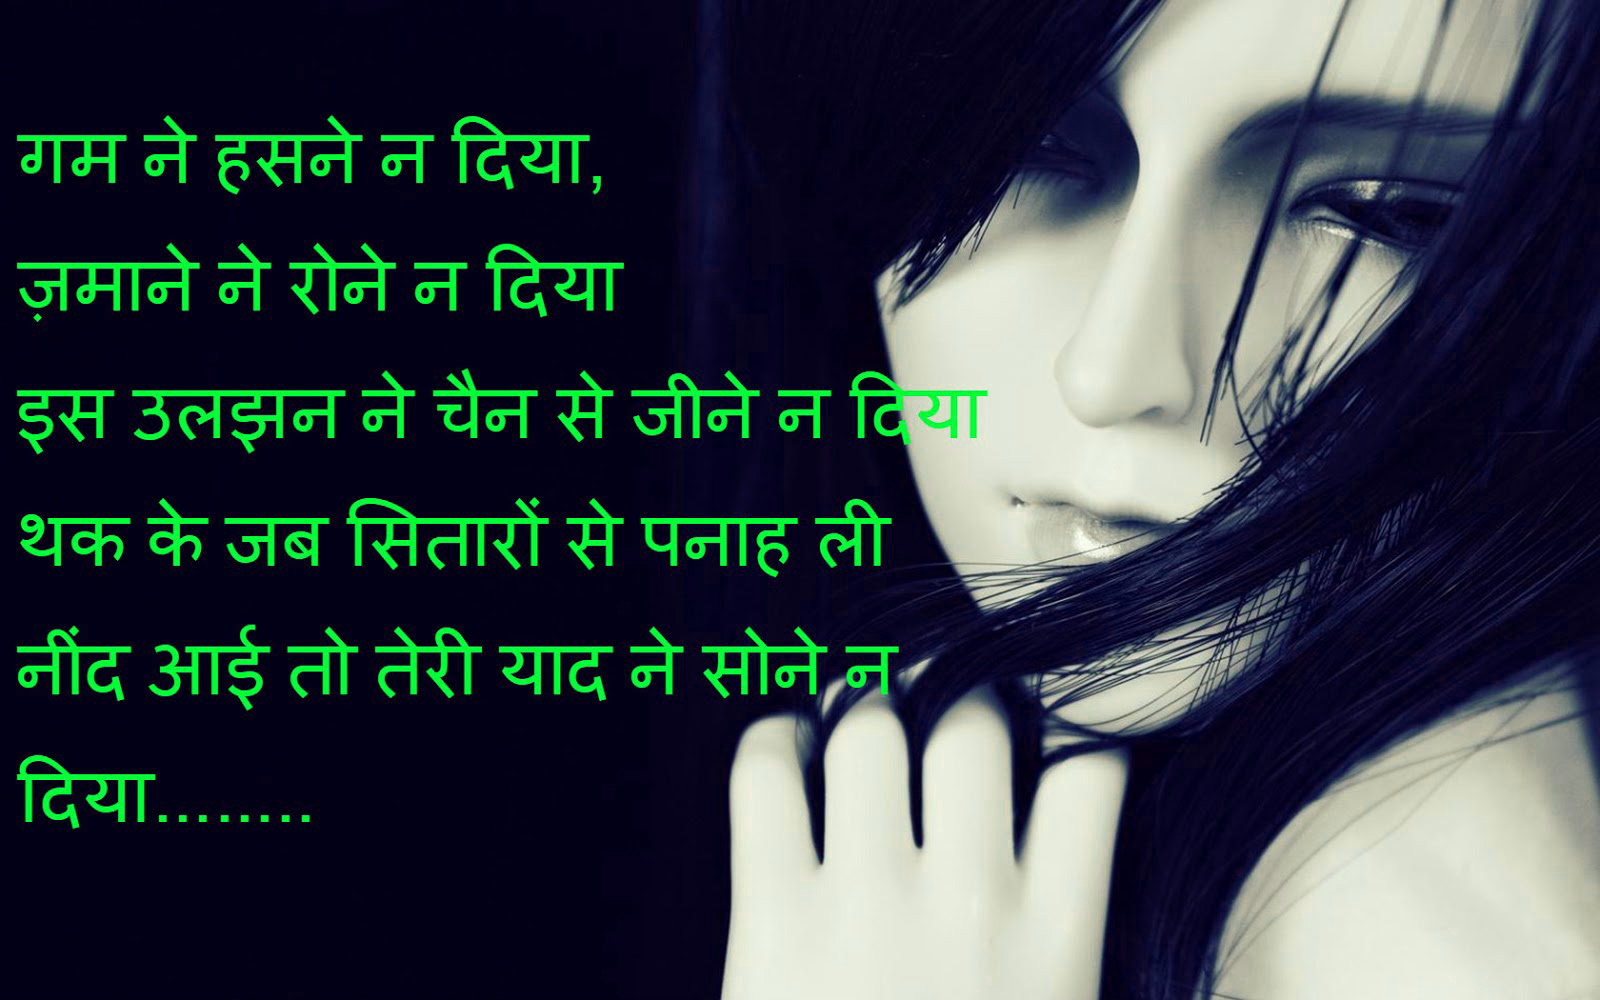 Romantic DP For Whatsapp With Hindi Wallpaper Pictures Download